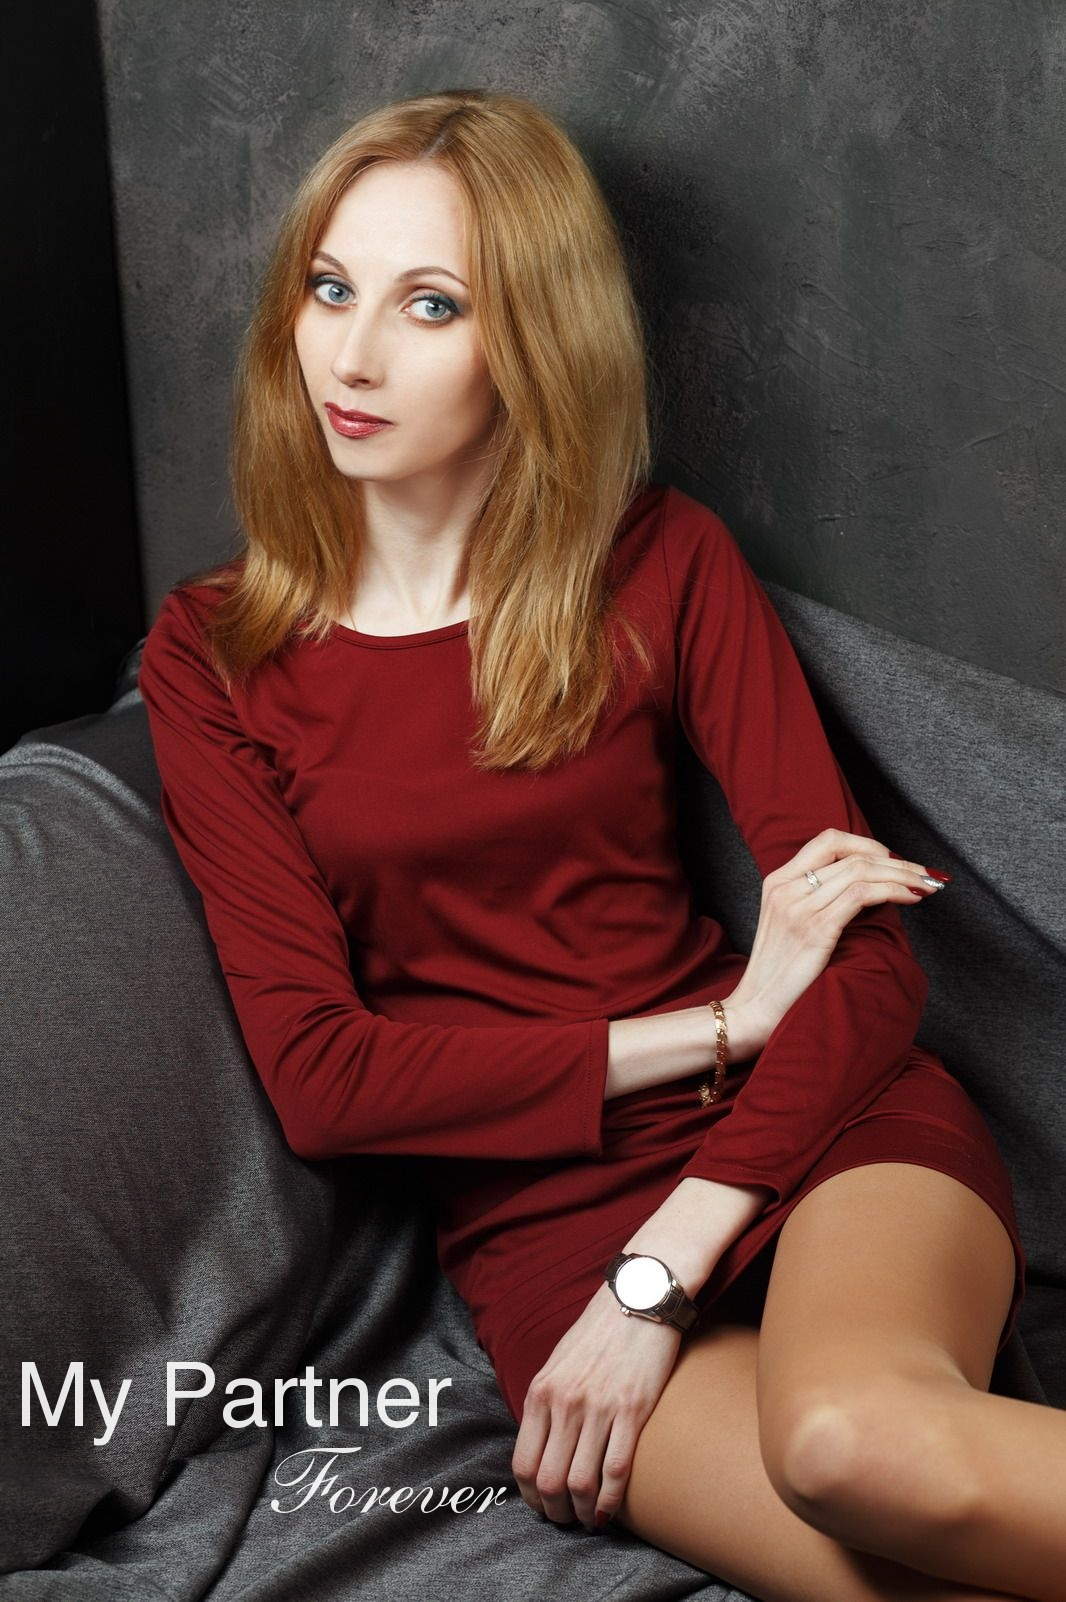 Datingsite to Meet Sexy Belarusian Girl Olga from Grodno, Belarus